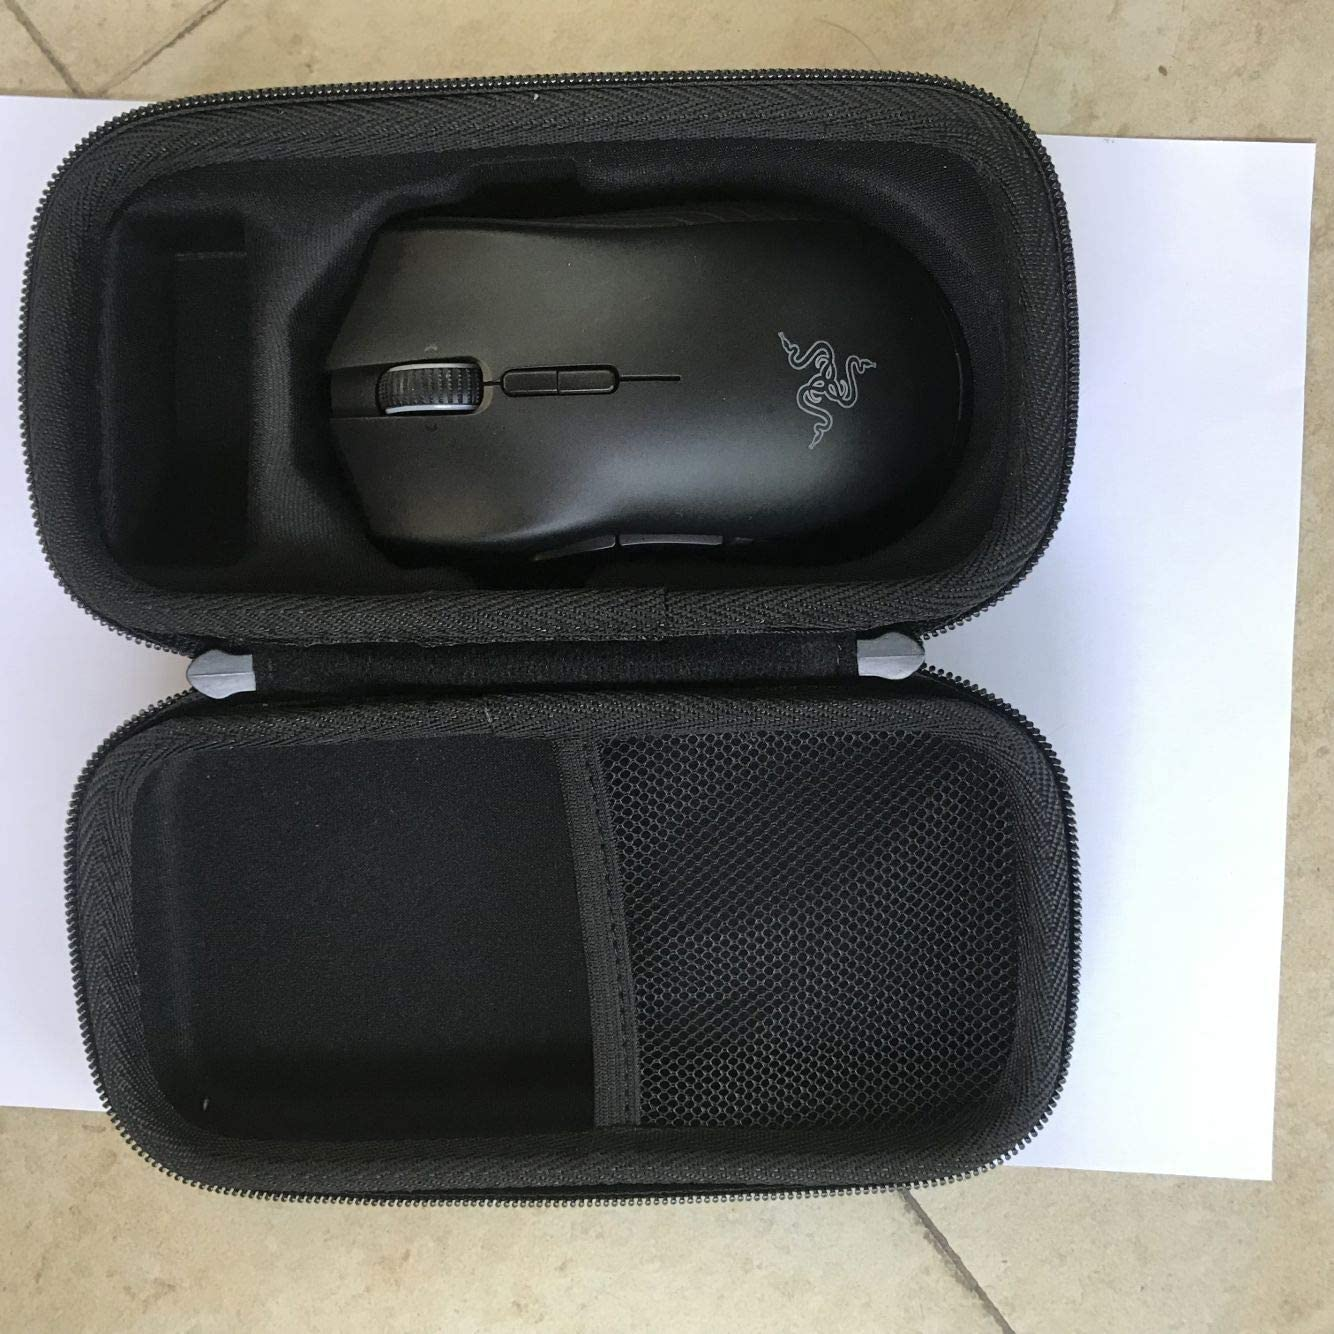 Travel Hard Protective Case Carrying Pouch Cover Bag for Razer Mamba Wireless Gaming Mouse//Razer Mamba HyperFlux Mouse